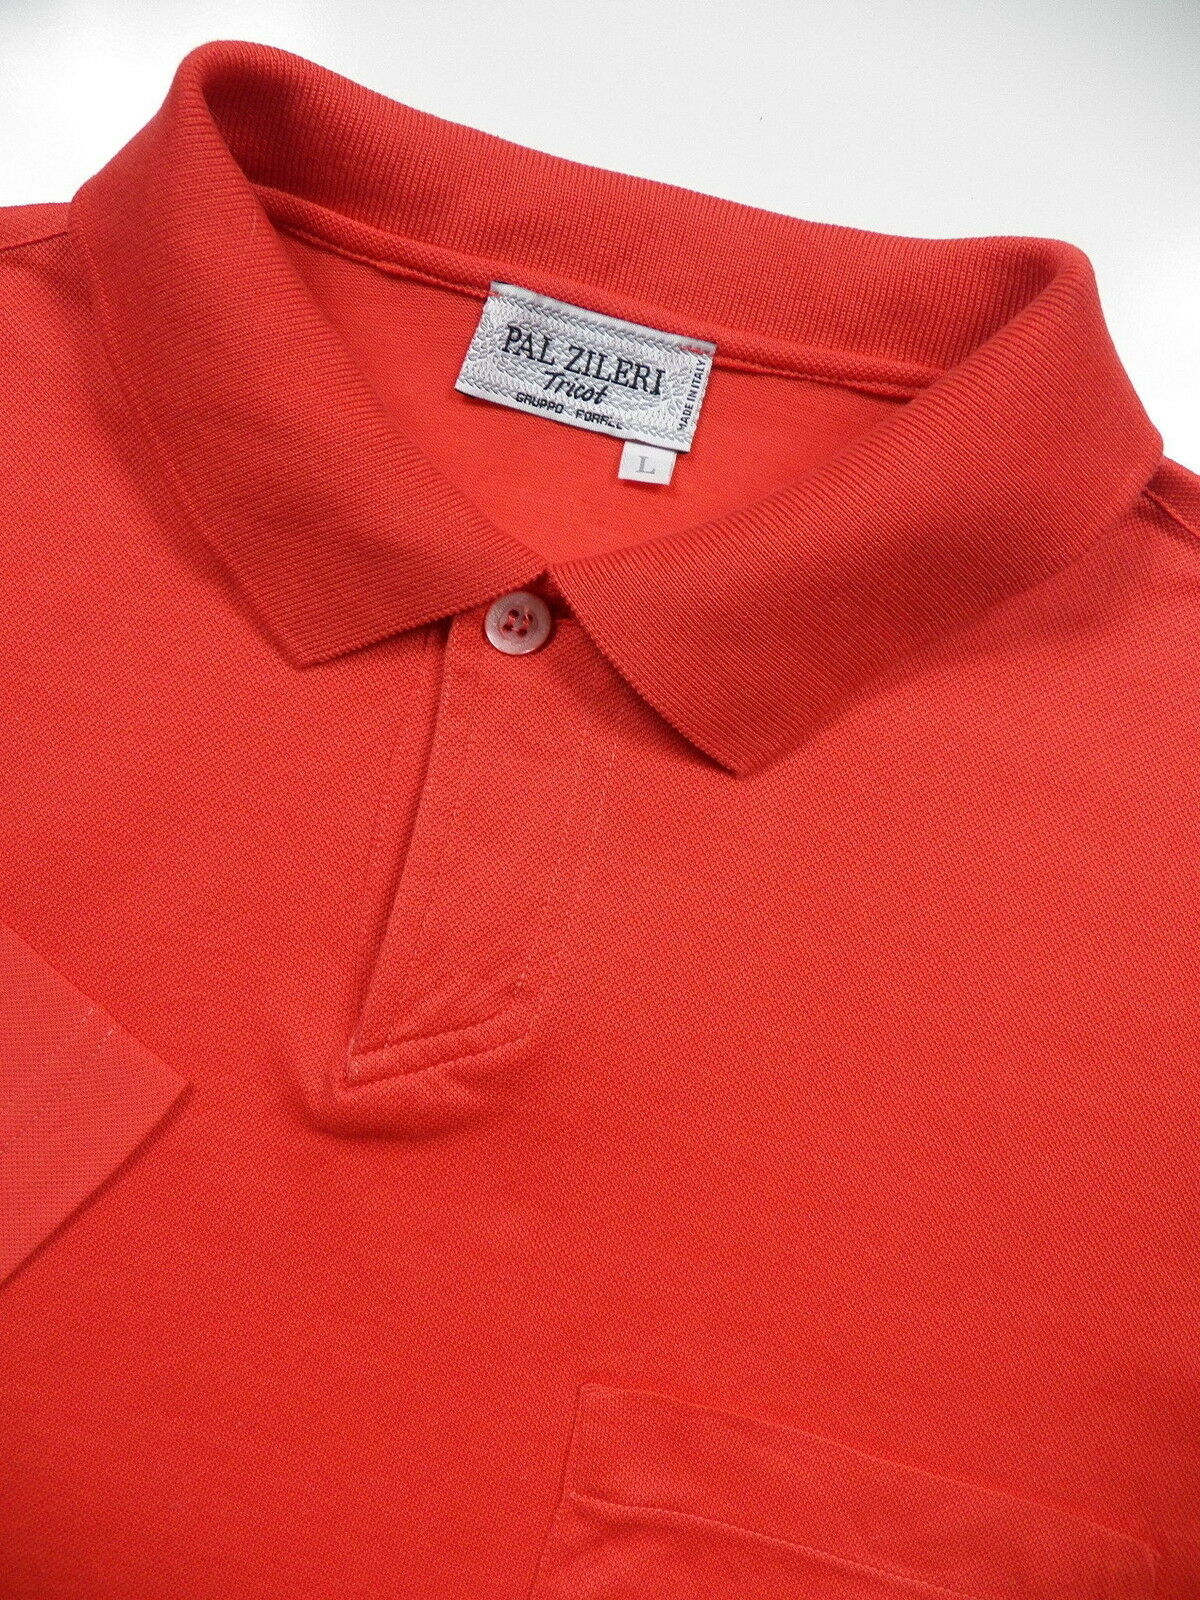 PAL ZILERI MENS LARGE LUXURY PIQUE POLO SHIRT STYLISH CORAL RED MADE IN ITALY